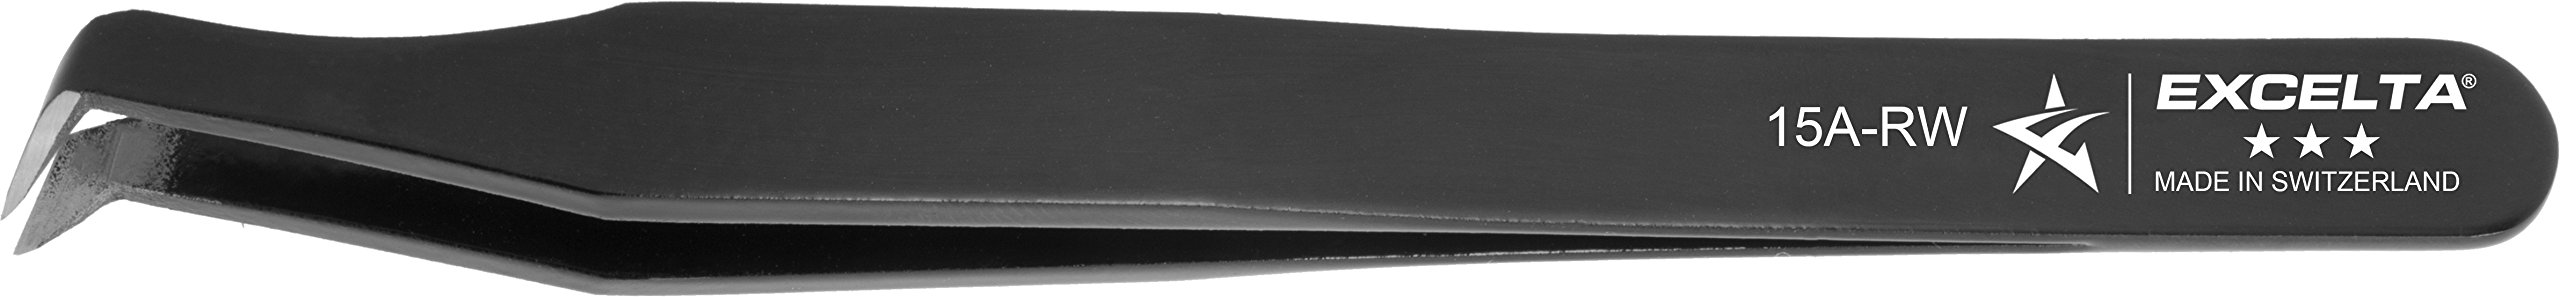 Excelta - 15A-RW - Tweezers - Cutting - Angulated - Three Star - Carbon Steel, 0.1'' Height, 0.39300000000000002'' Wide, 4.5'' Length